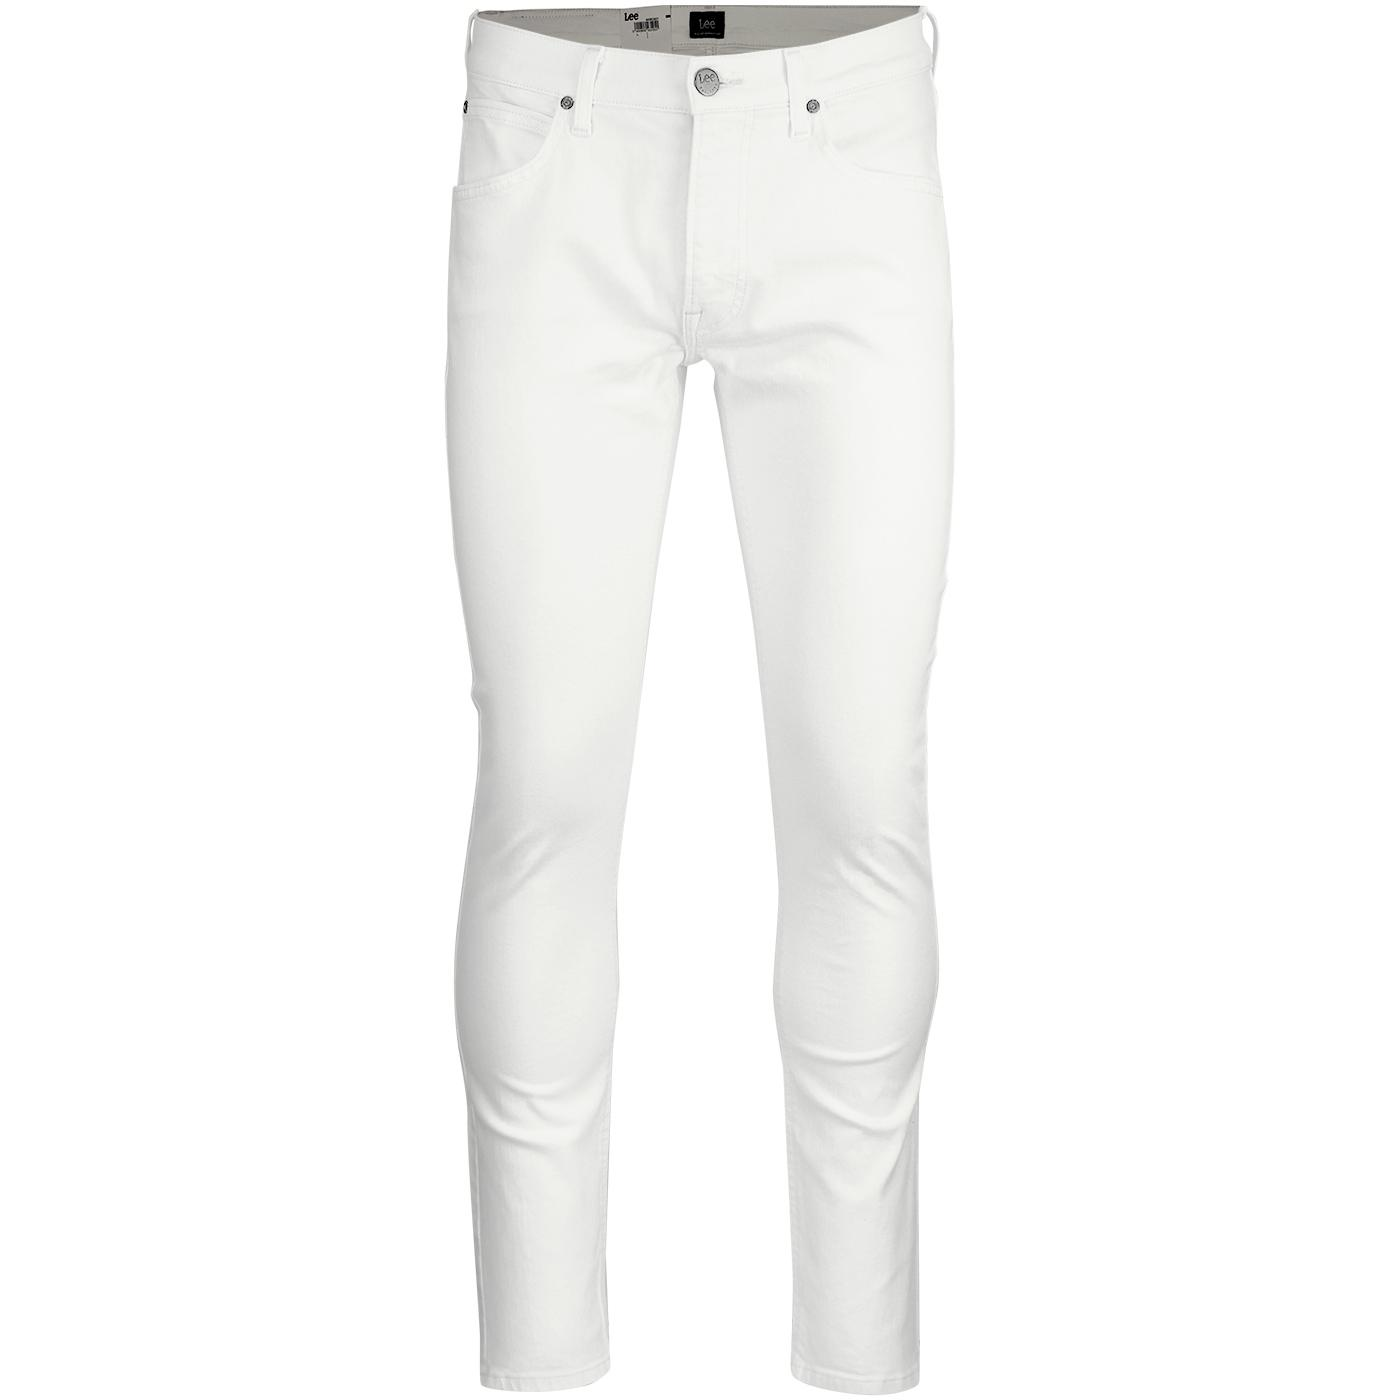 Luke LEE Slim Tapered Mod Denim Jeans (Off White)